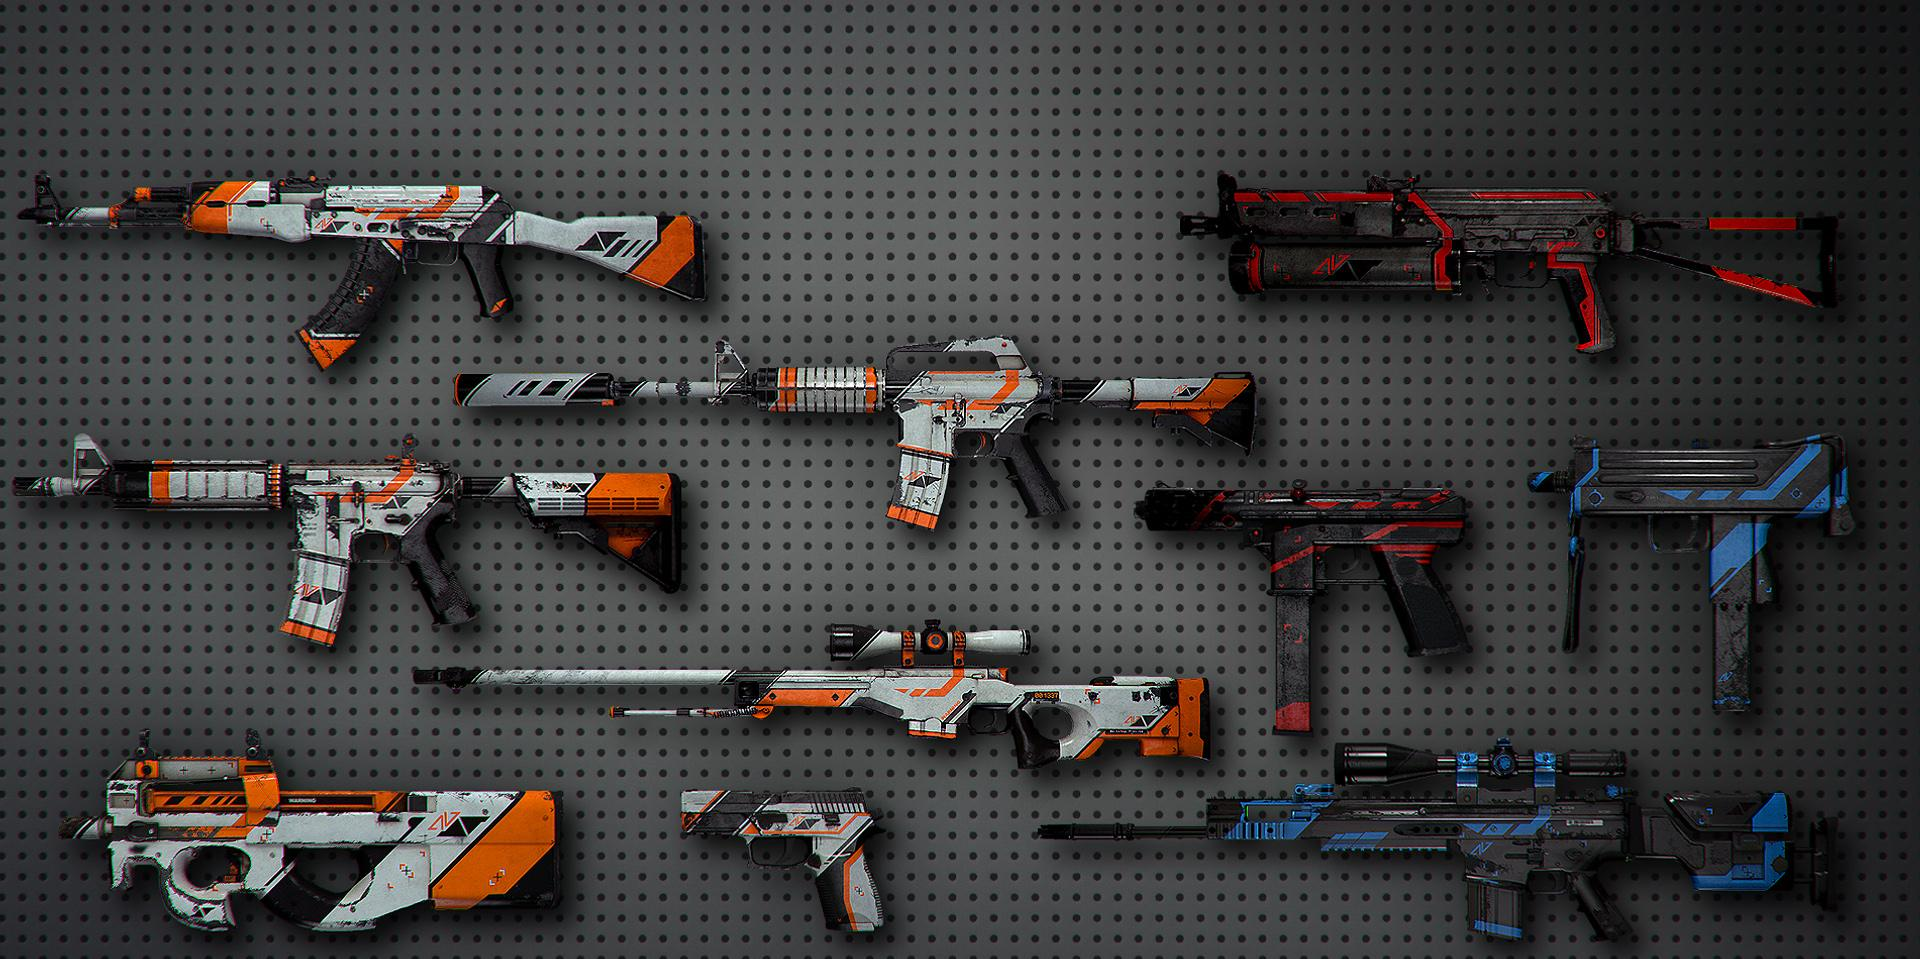 CS:GO are renowned for their in-game weapon skins